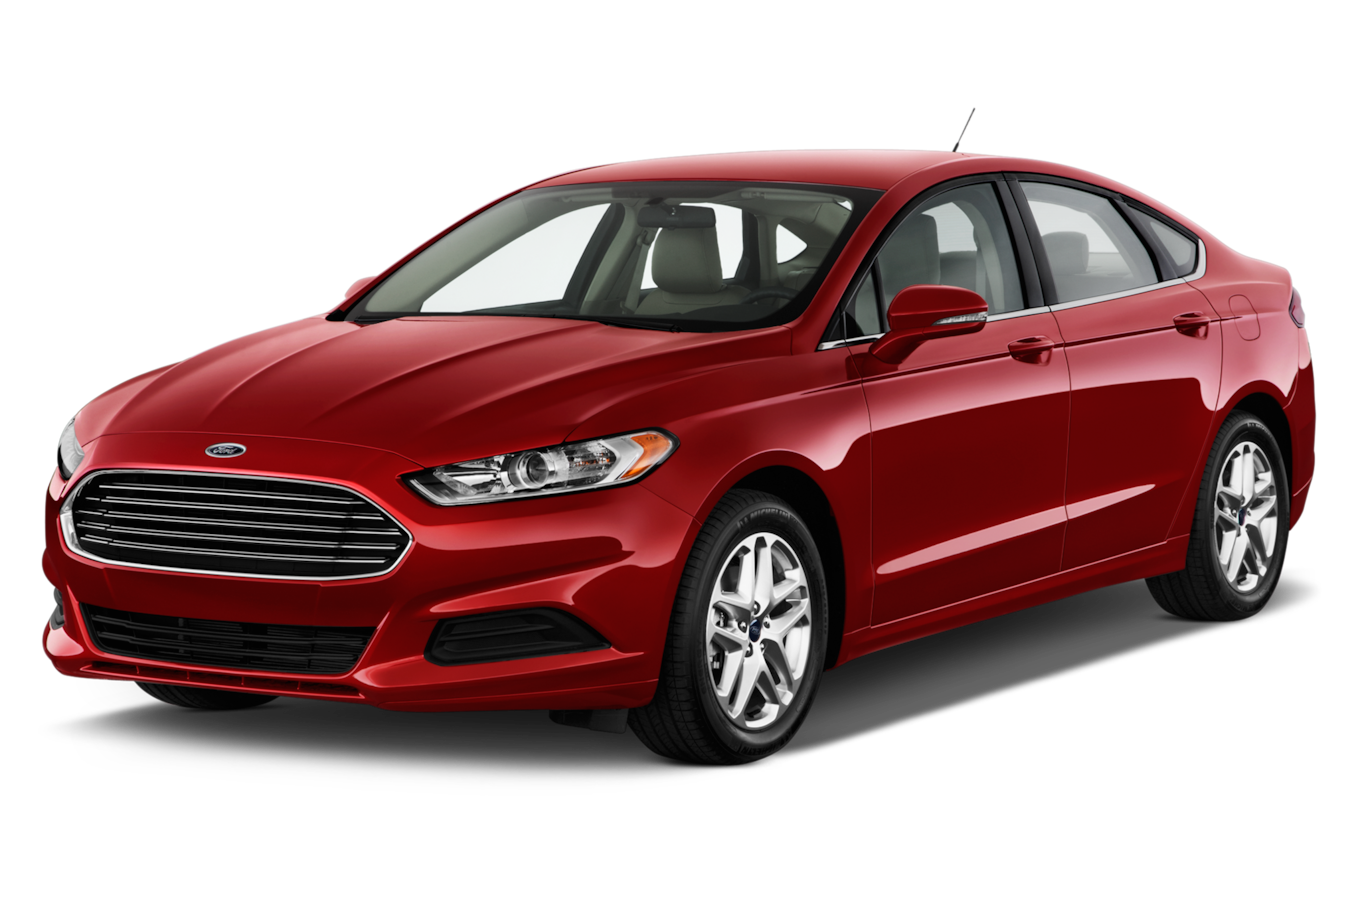 Ford fusion PNG Images.